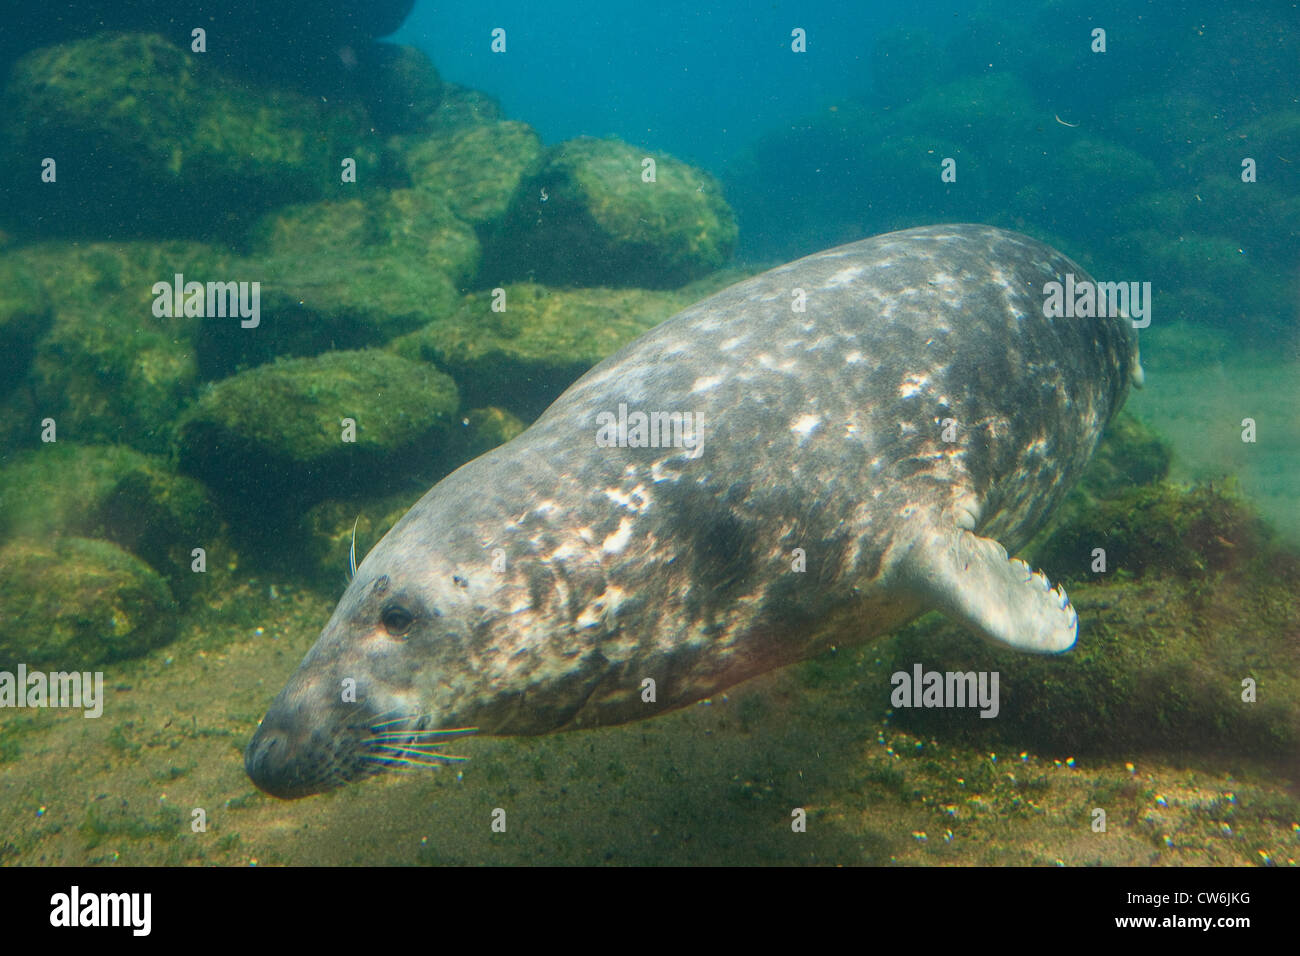 gray seal (Halichoerus grypus), diving under water, Germany Stock Photo